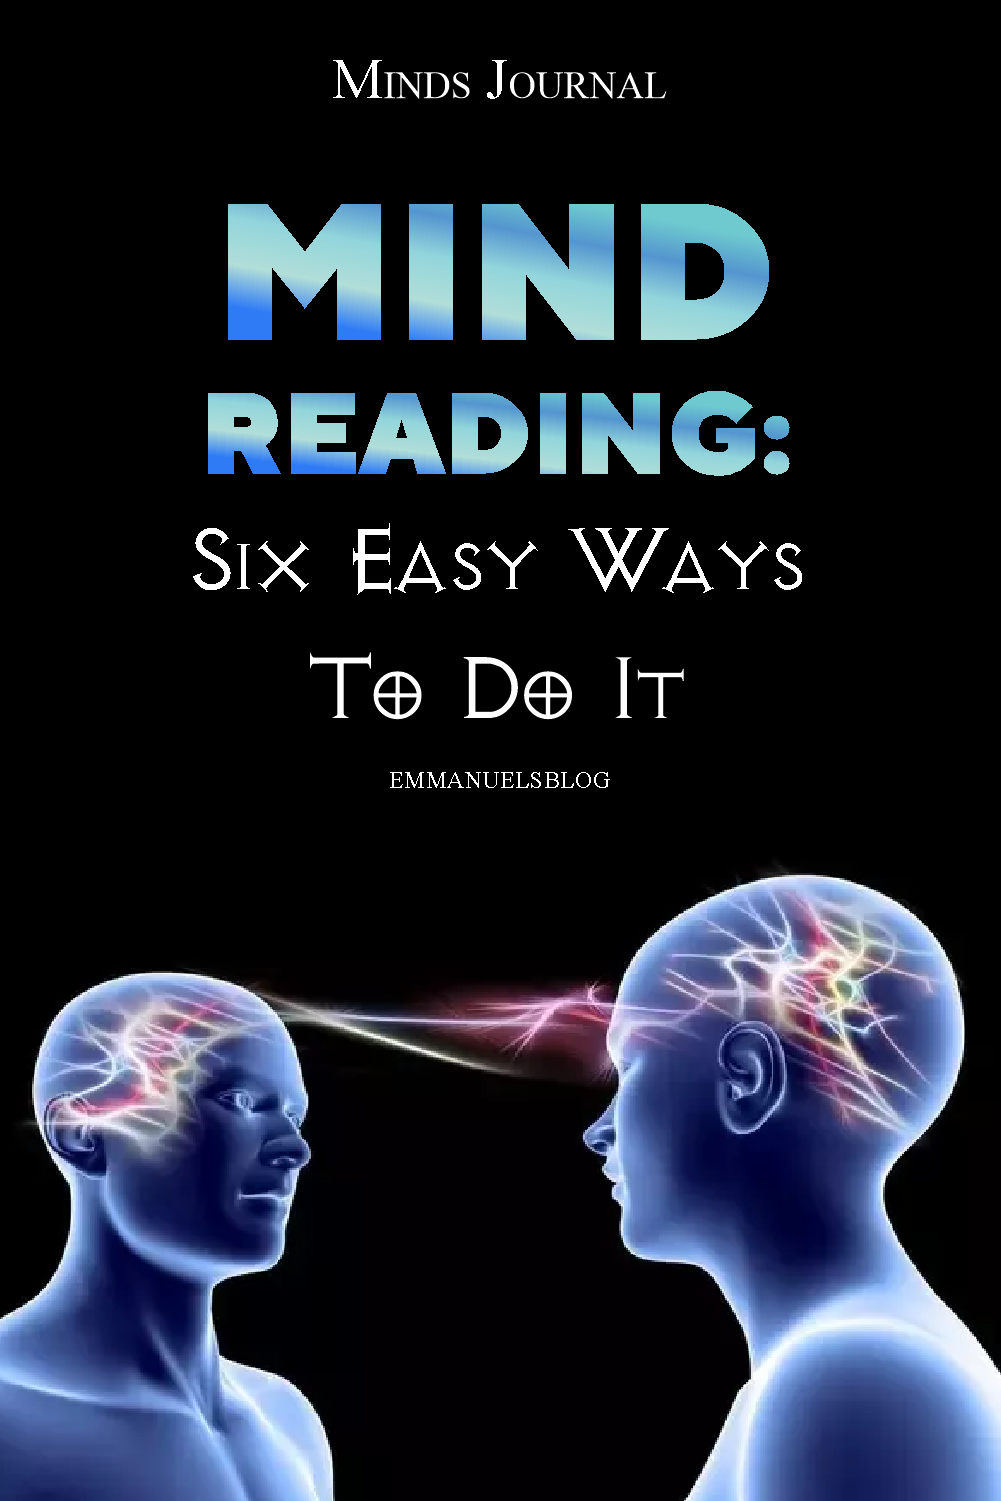 Mind Reading: Six Easy Ways To Do It Effectively